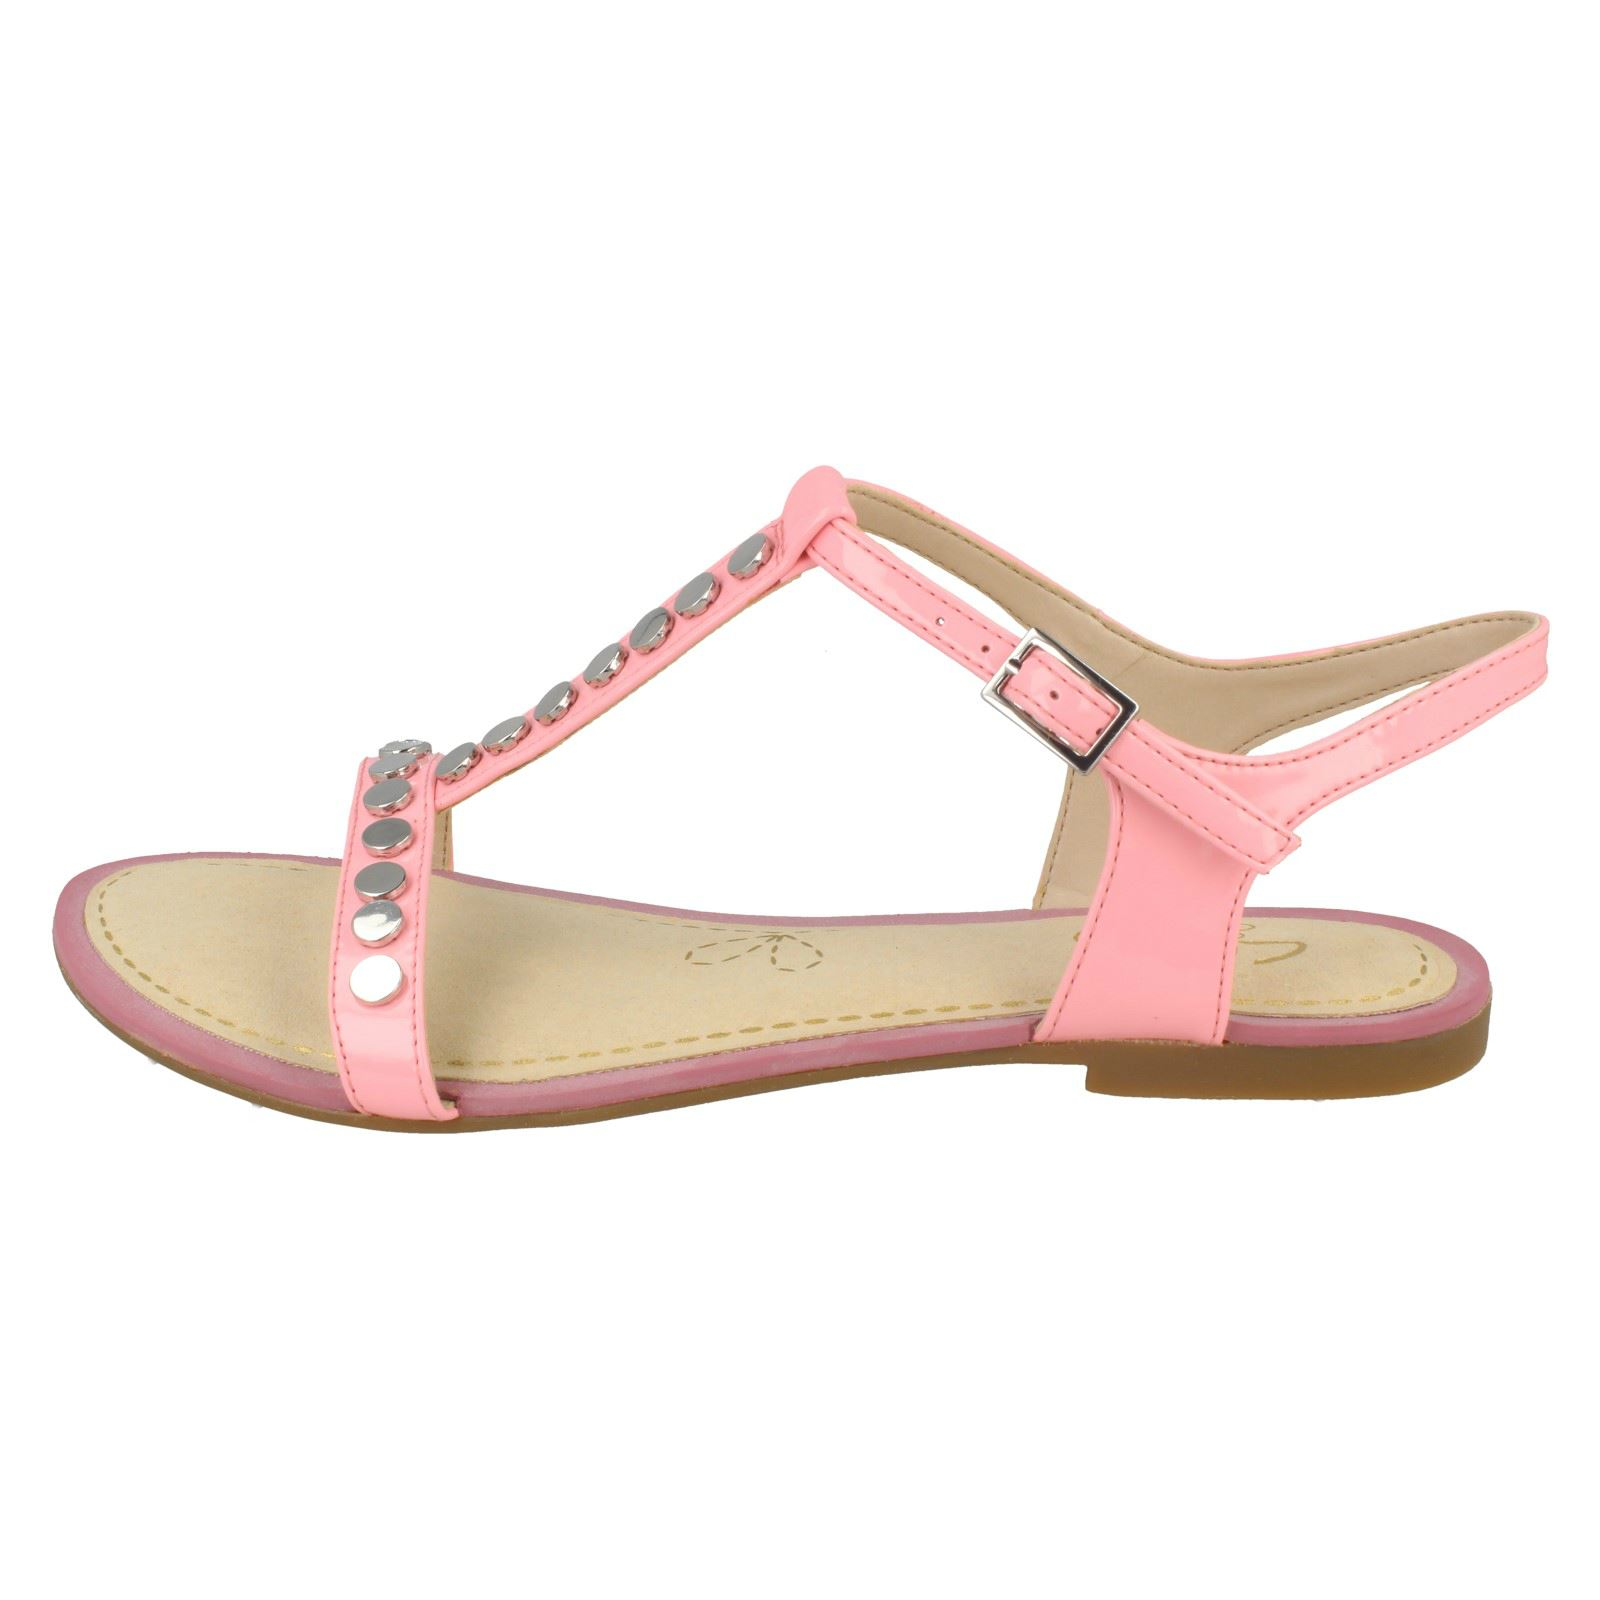 0ed1f97f8 Ladies Clarks Flat Studded Buckled Summer Sandals Sail Festival 3.5 UK Pink  D. About this product. Picture 1 of 10  Picture 2 of 10  Picture 3 of 10 ...